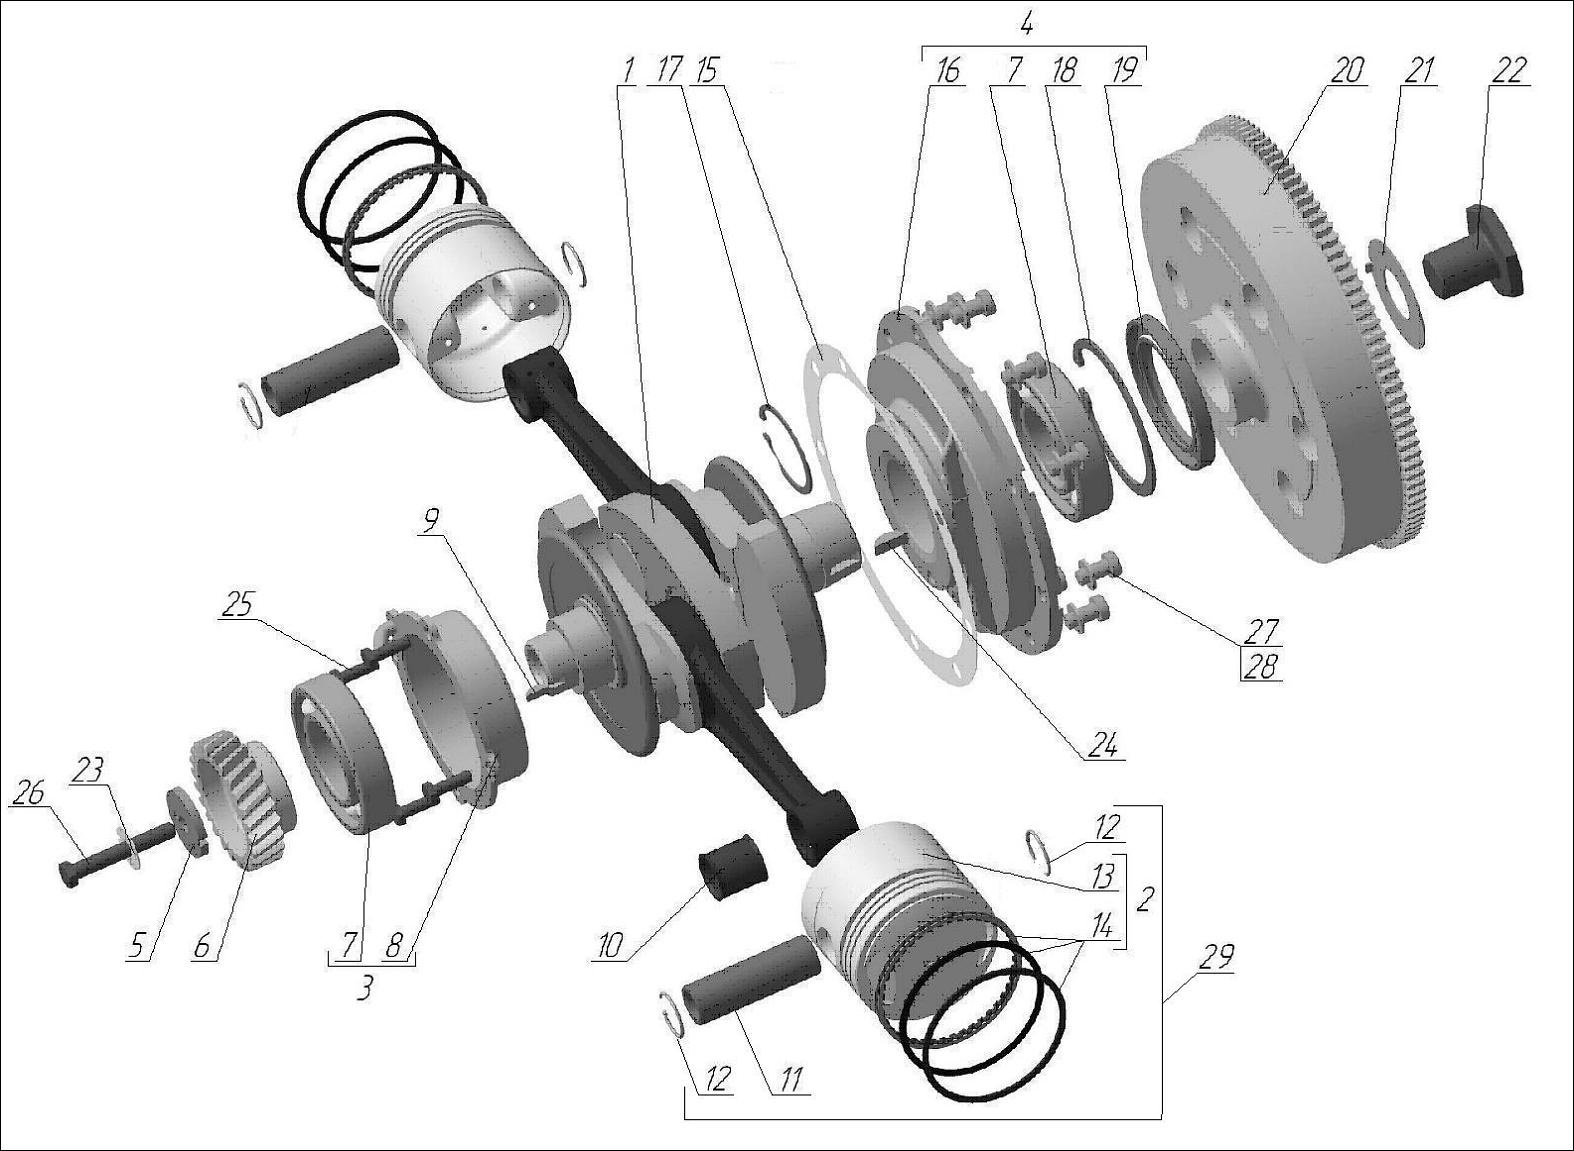 Crankshaft with conrods and pistons